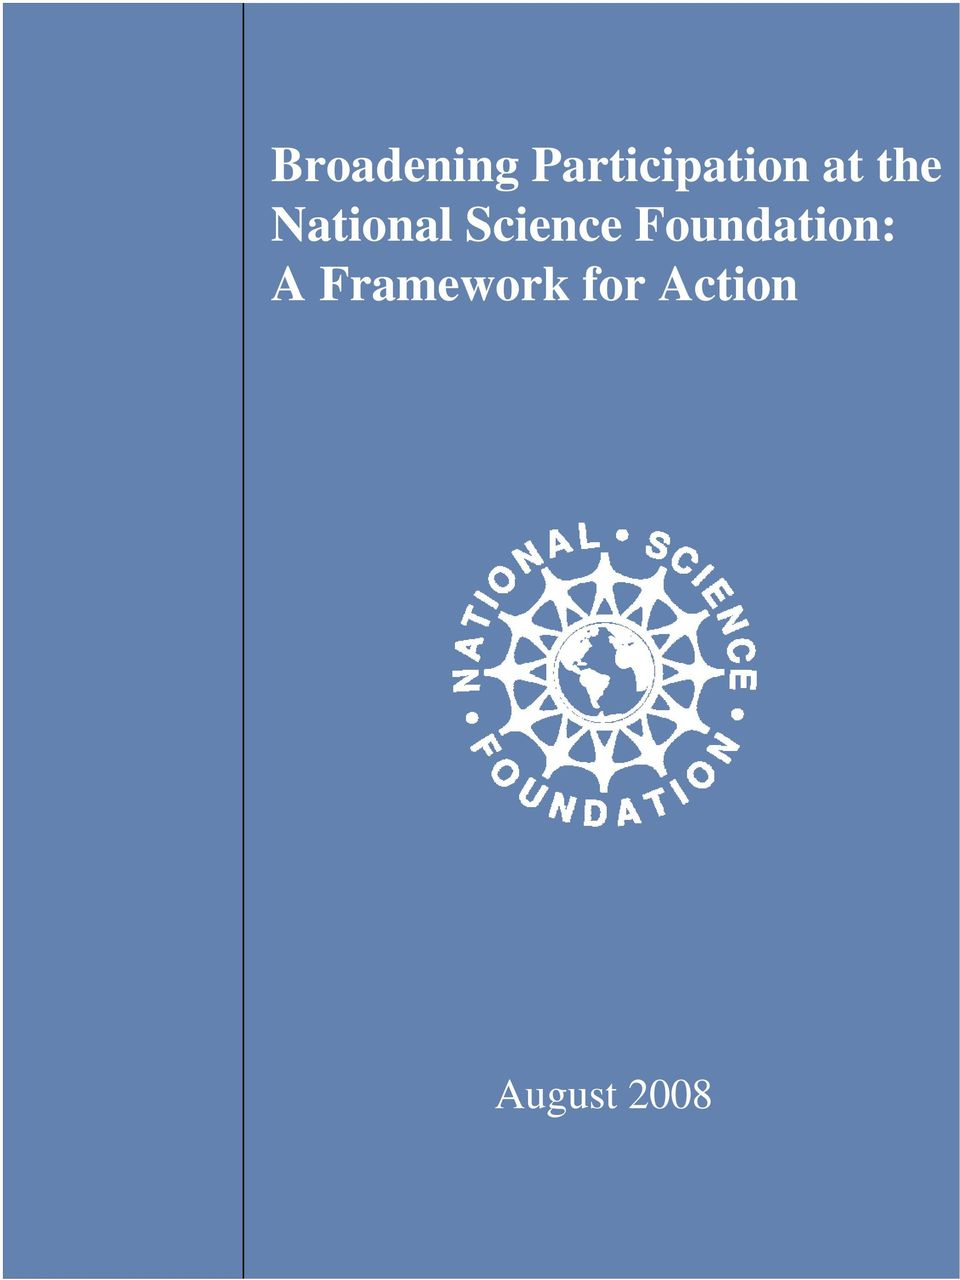 National Science